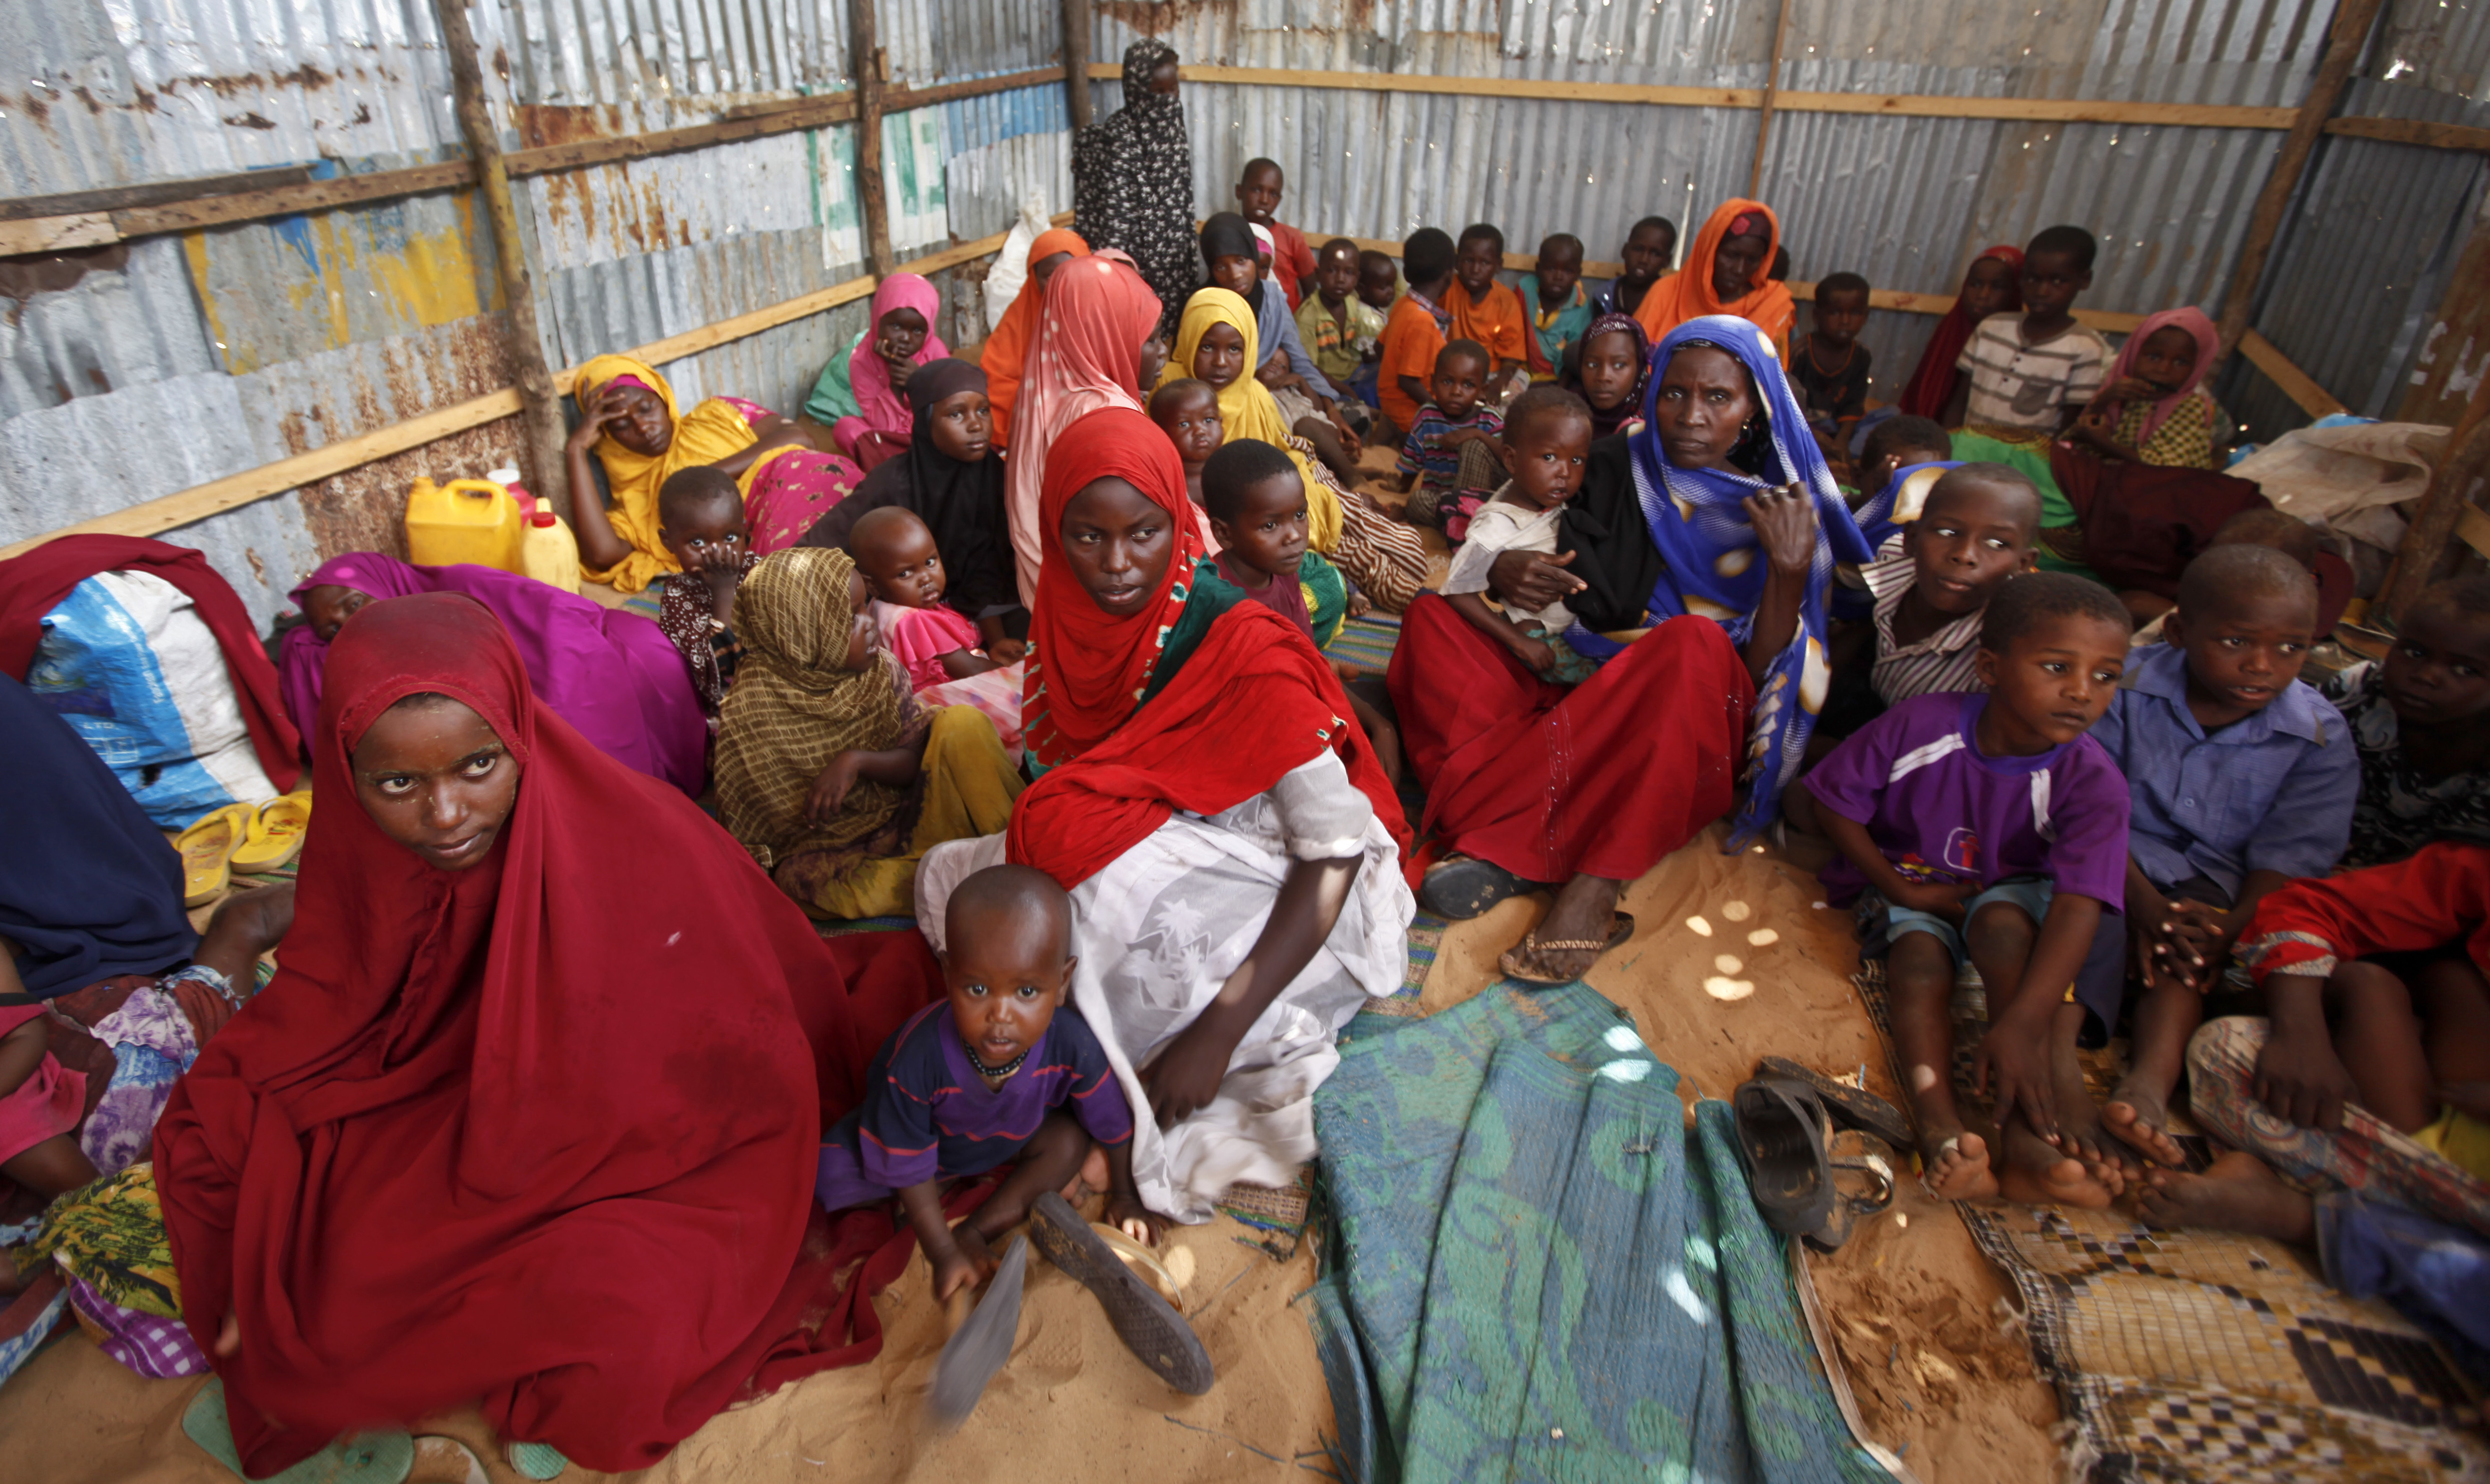 Displaced Somalis who fled the drought in southern Somalia sit in a camp in the capital Mogadishu, Somalia, in this file photo. (AP Photo/Farah Abdi Warsameh, File)